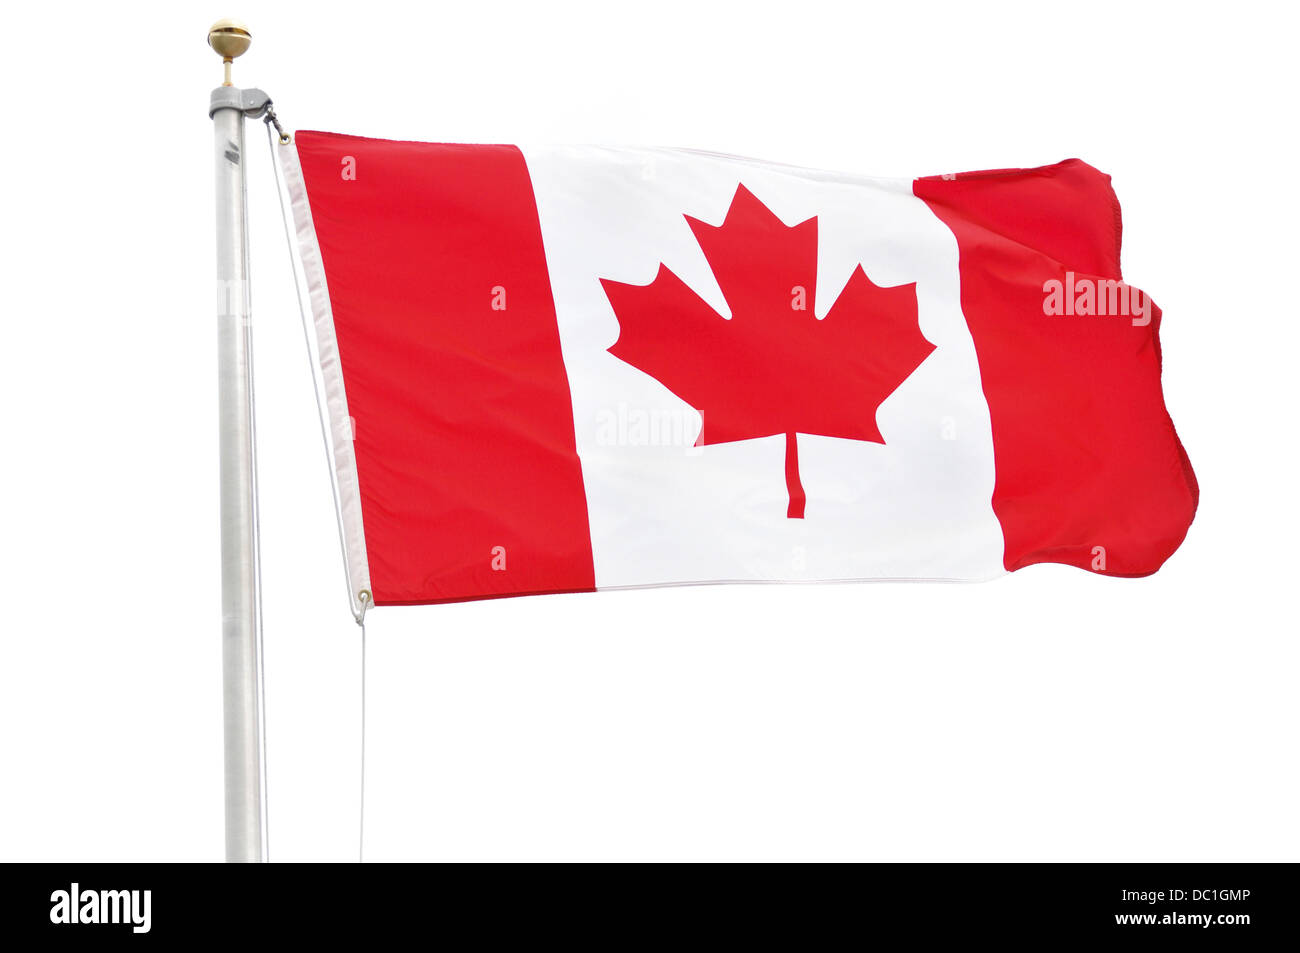 Flag of Canada Isolated on a White Background Stock Photo